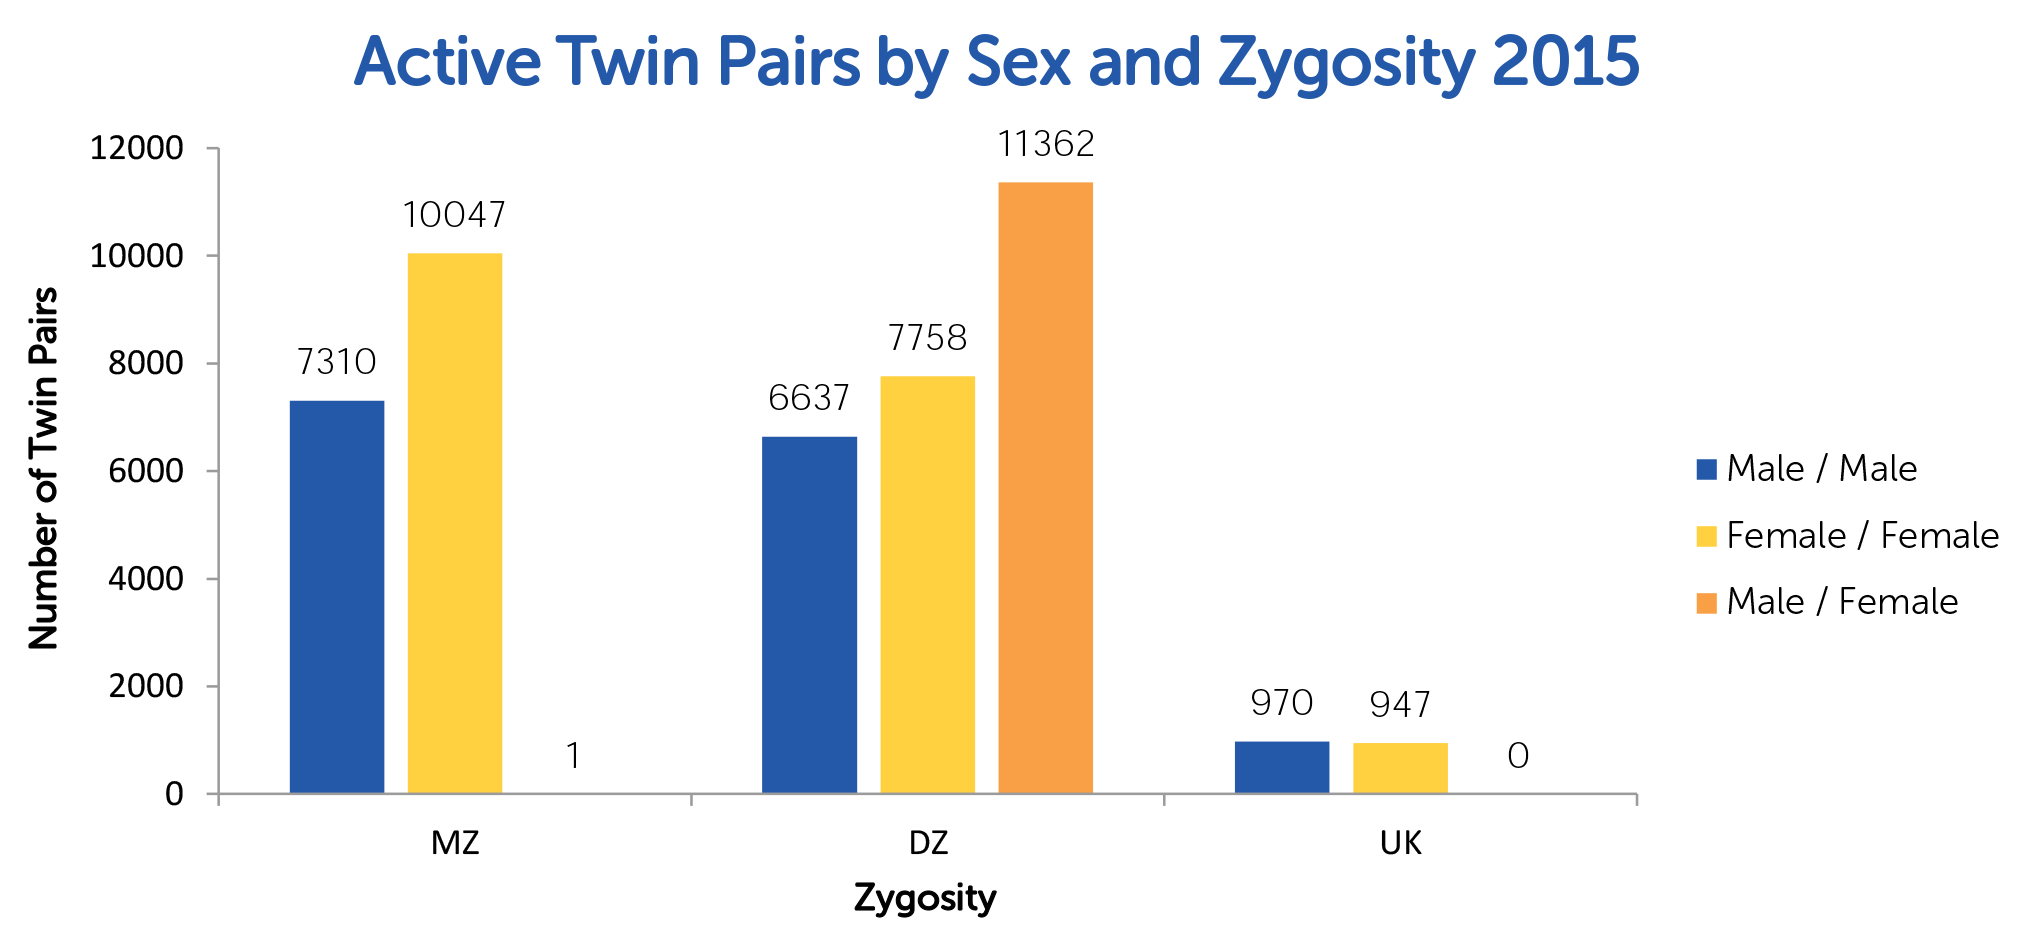 TRA Active Twin Pairs Sex Zygosityty 2015